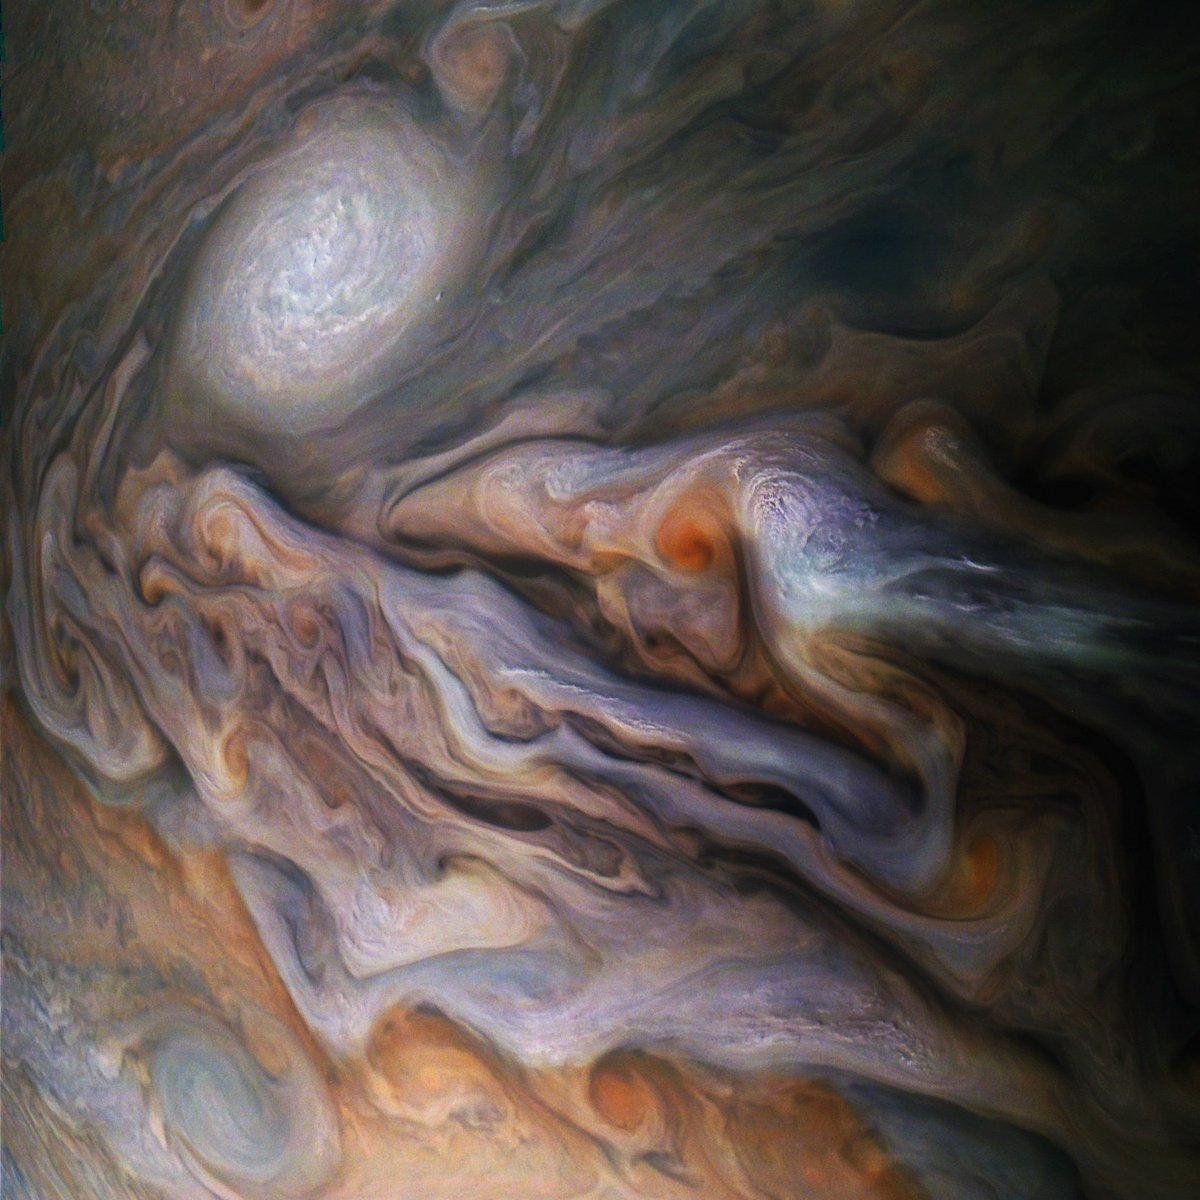 Sitting 4,400 miles above Jupiter, Nasa's Juno spacecraft took this stunning image of a large anticyclone known as a white oval. See those slightly raised white dots located next to the red storm at right center? They're high-altitude clouds https://t.co/WEKjHLo53Y